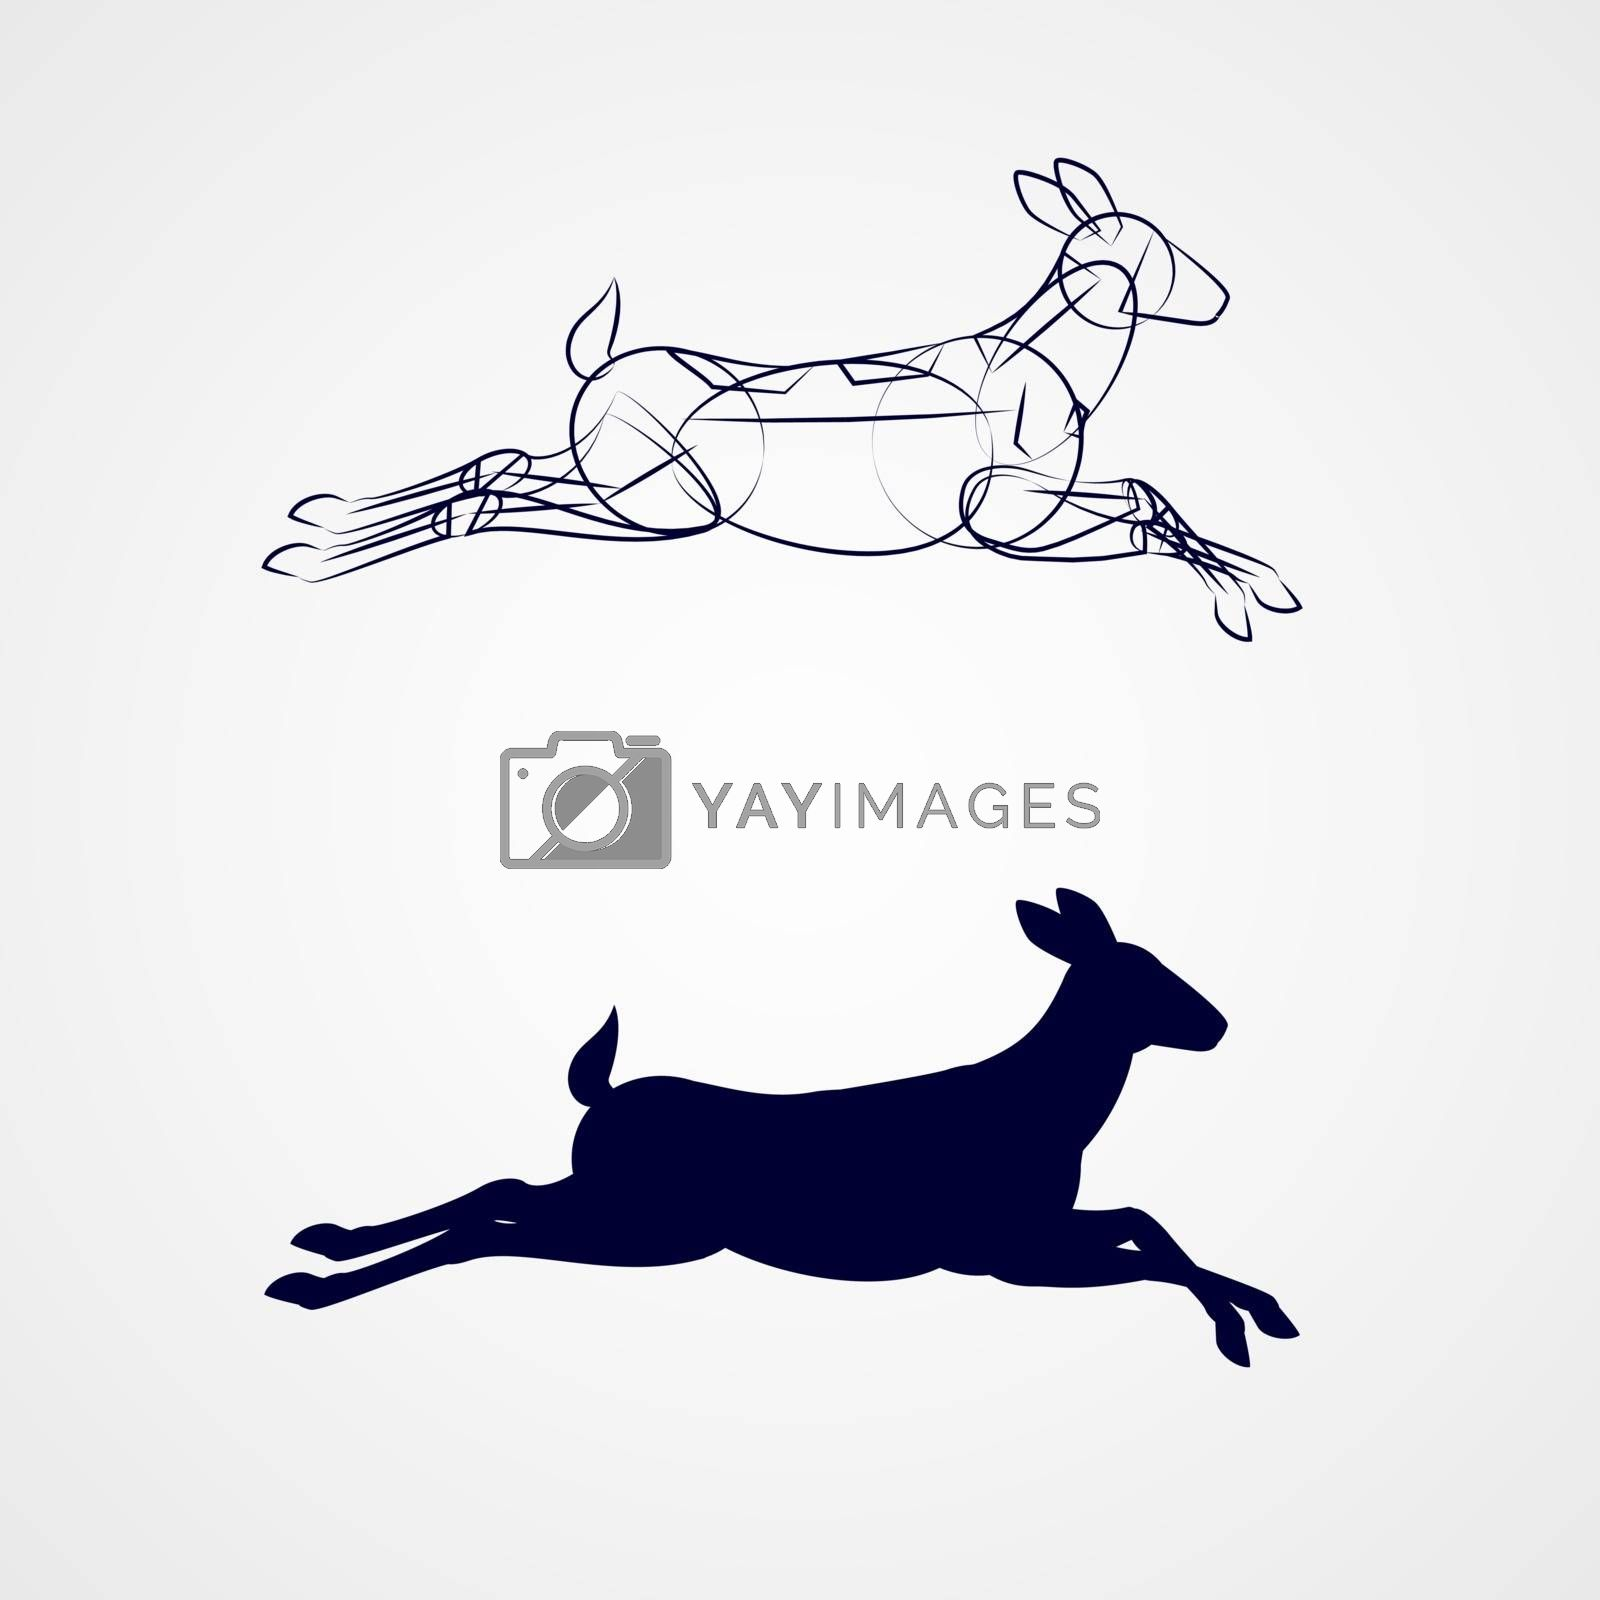 Female Deer Silhouette with Sketch Running on Gray Background